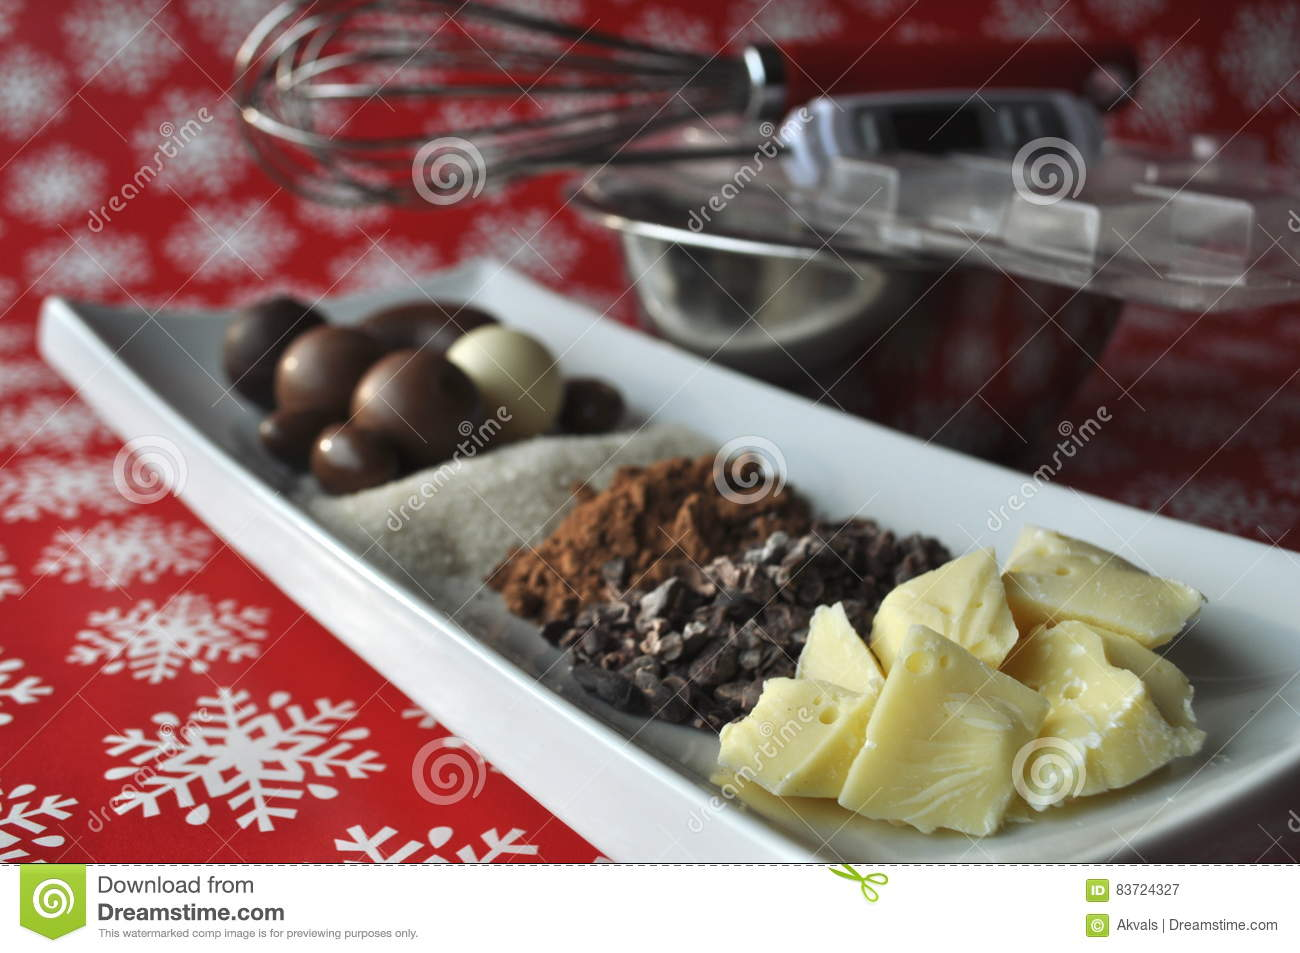 Ingredients And Tools For Making Chocolates On Winter Background With Snow Flakes Stock Photo